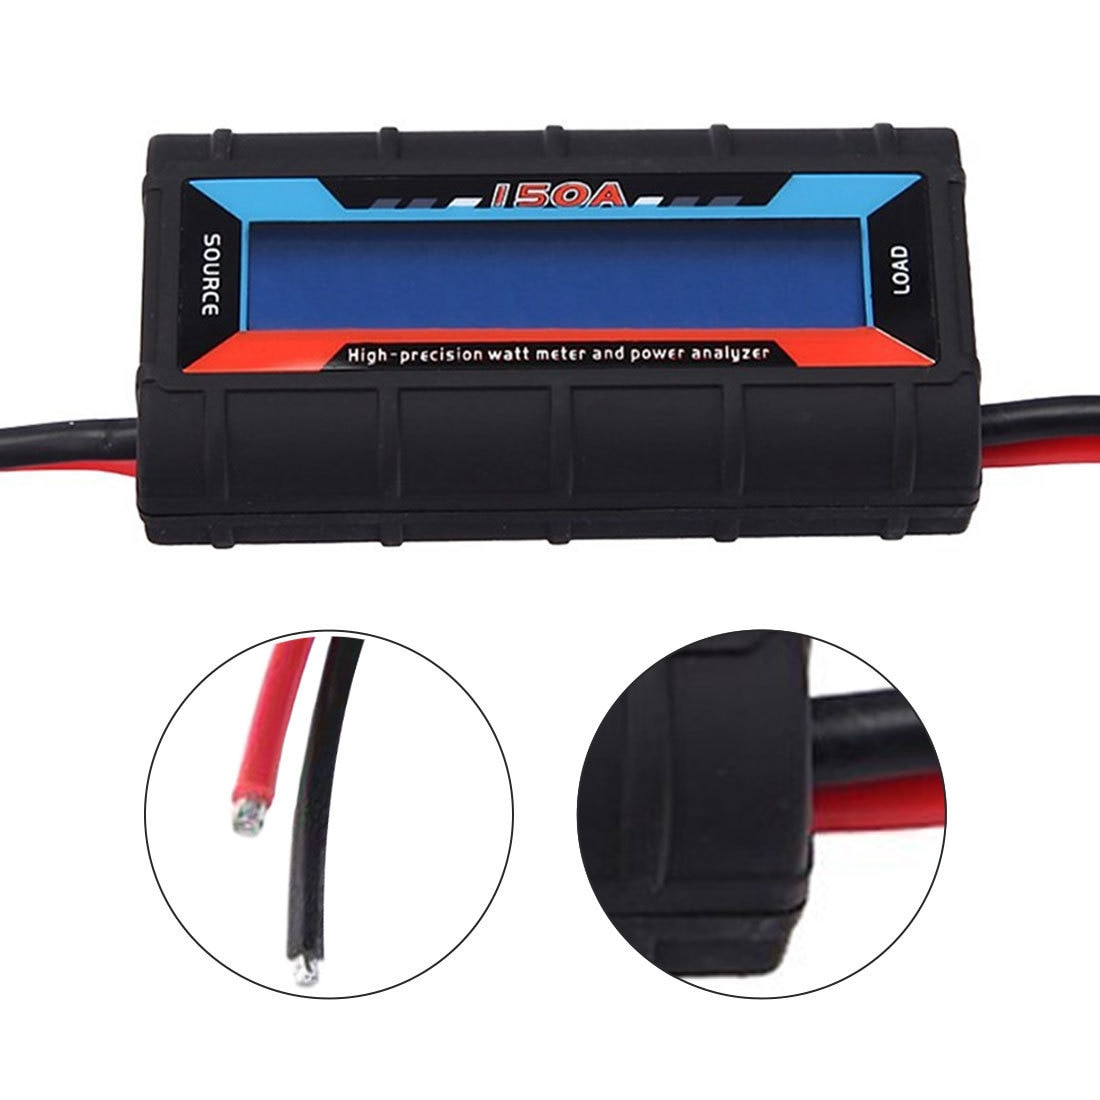 Current Power Analyzer 150A RC Tools High Precision Watt Meter with Backlight LCD Drone Accessories